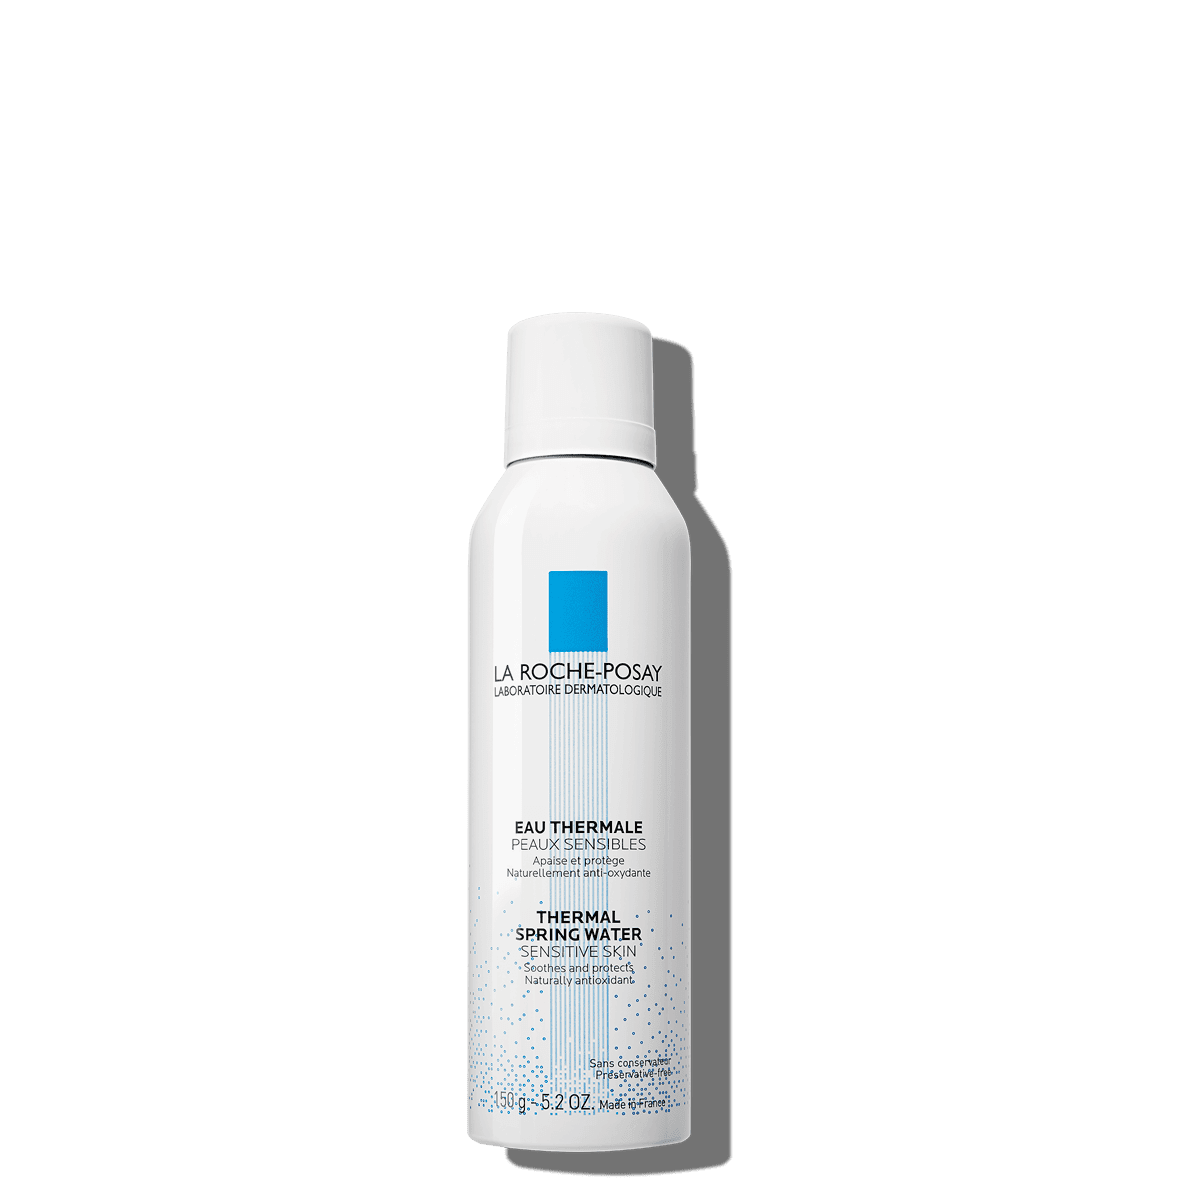 La Roche Posay ProductPage Thermal Spring Water 150ml 3433422404397 Fr